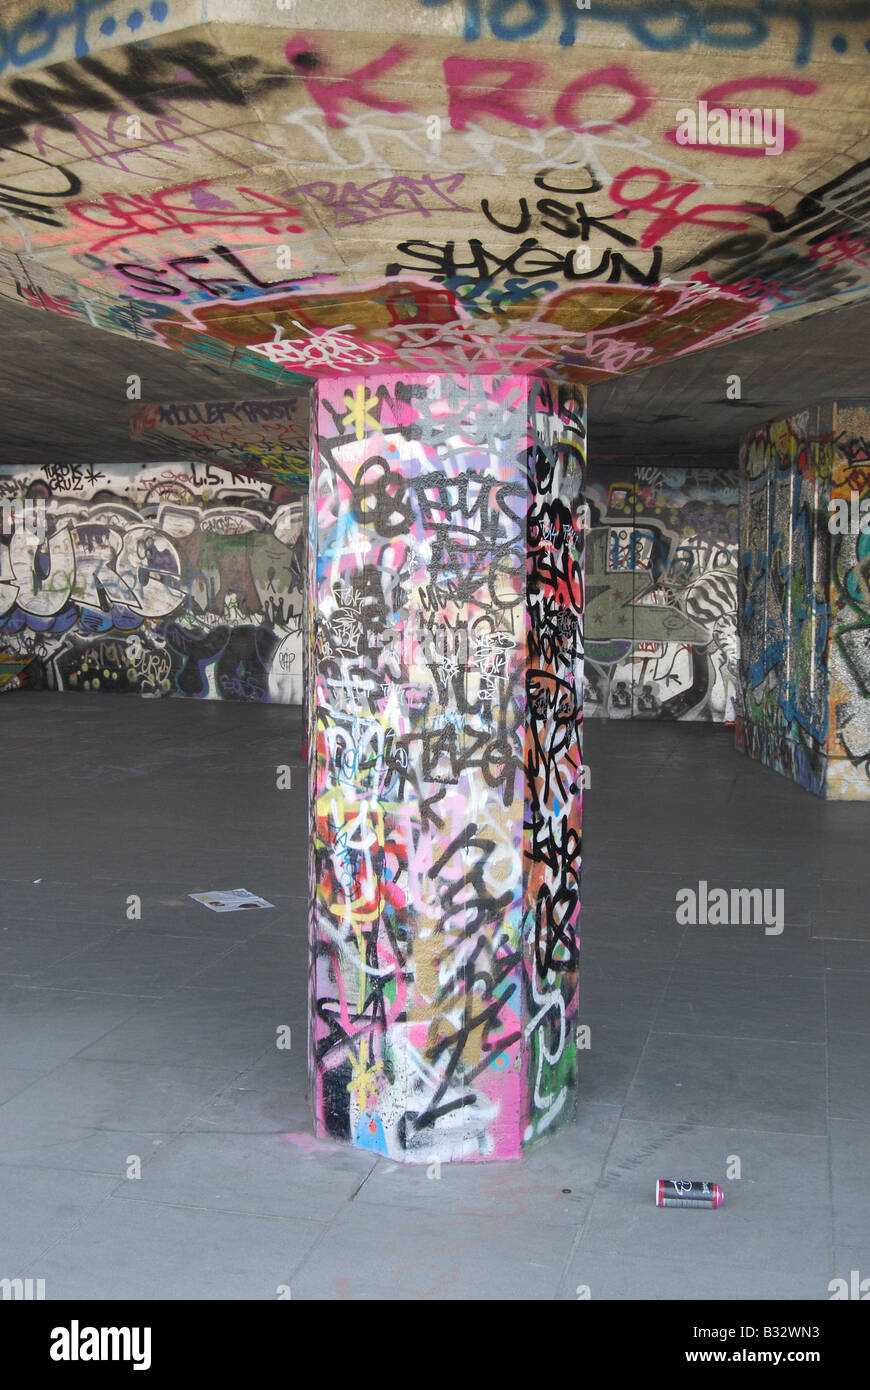 Spraycan graffiti art art urbain Photo Stock